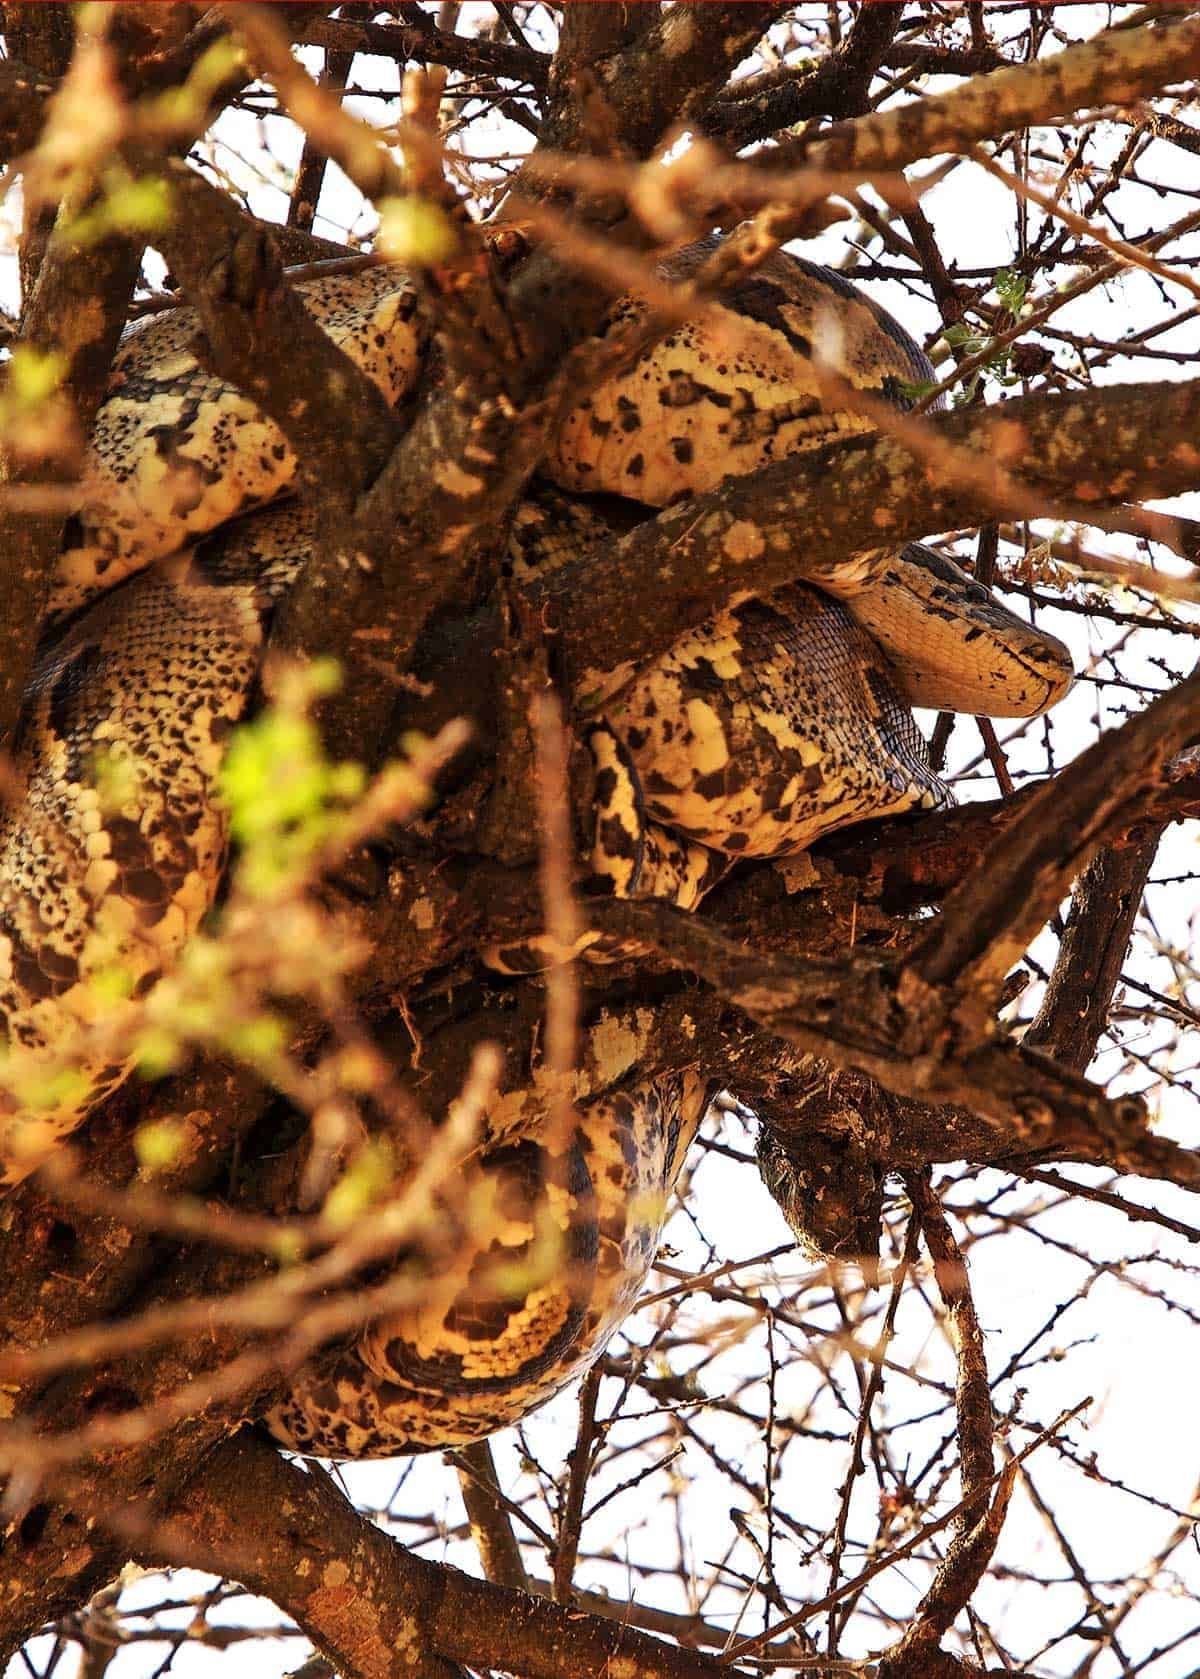 African Rock Python in a tree